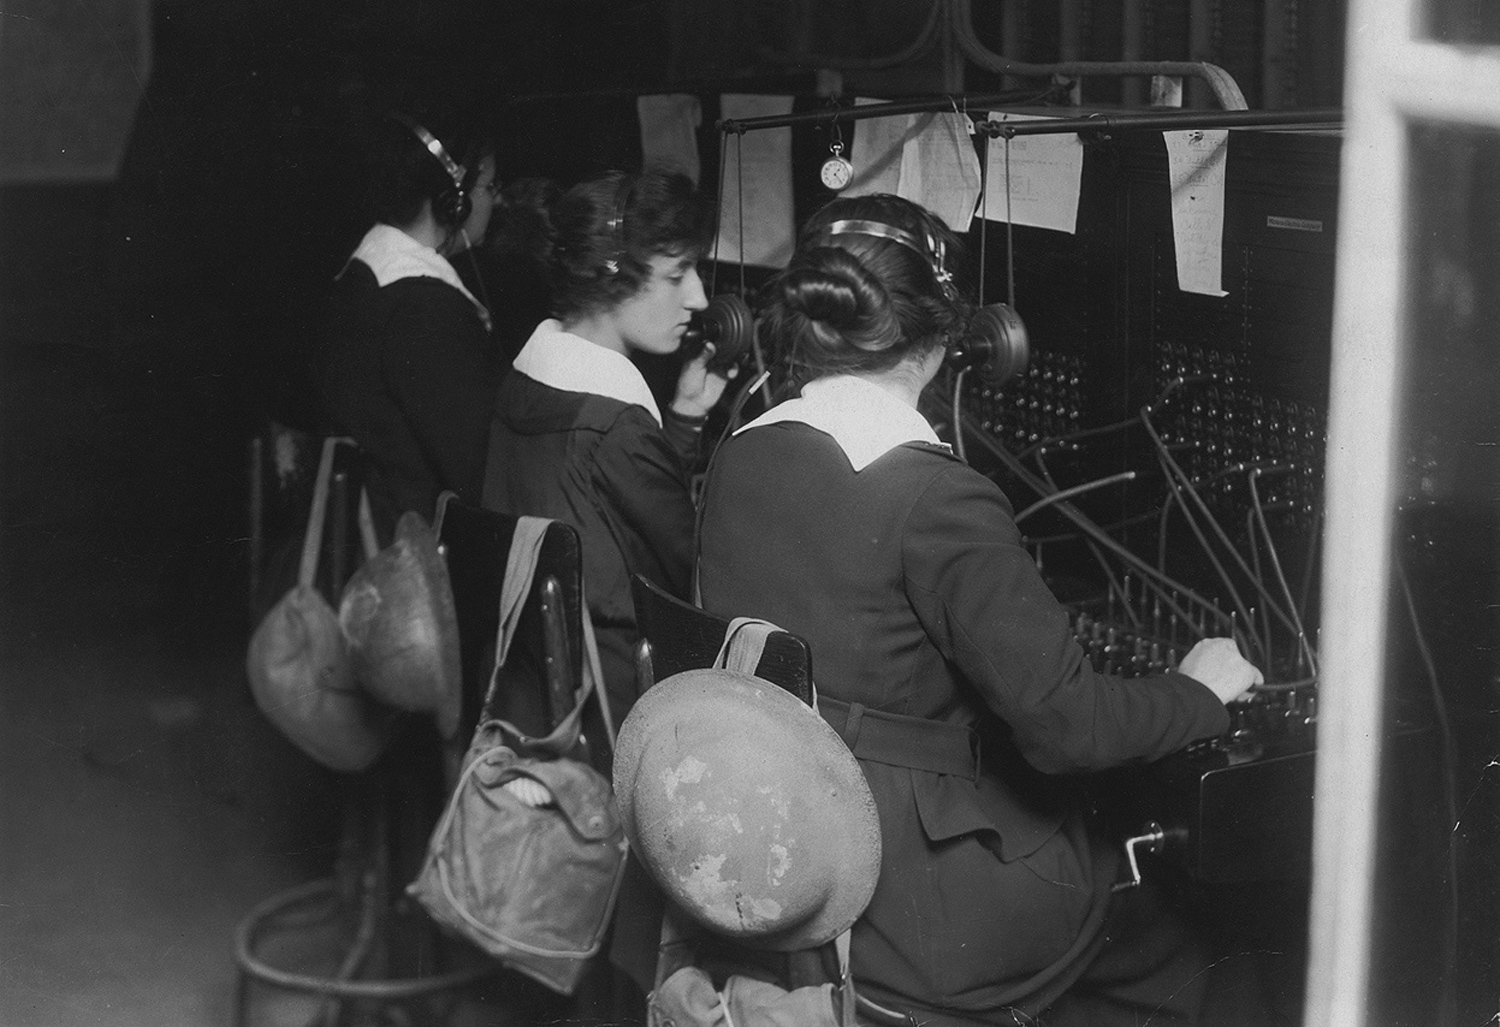 Women operated the telephone switchboards that allowed commanders to understand and control what was going on. Exchanges at forward headquarters sometimes came under artillery fire, and operators kept their gas masks close.